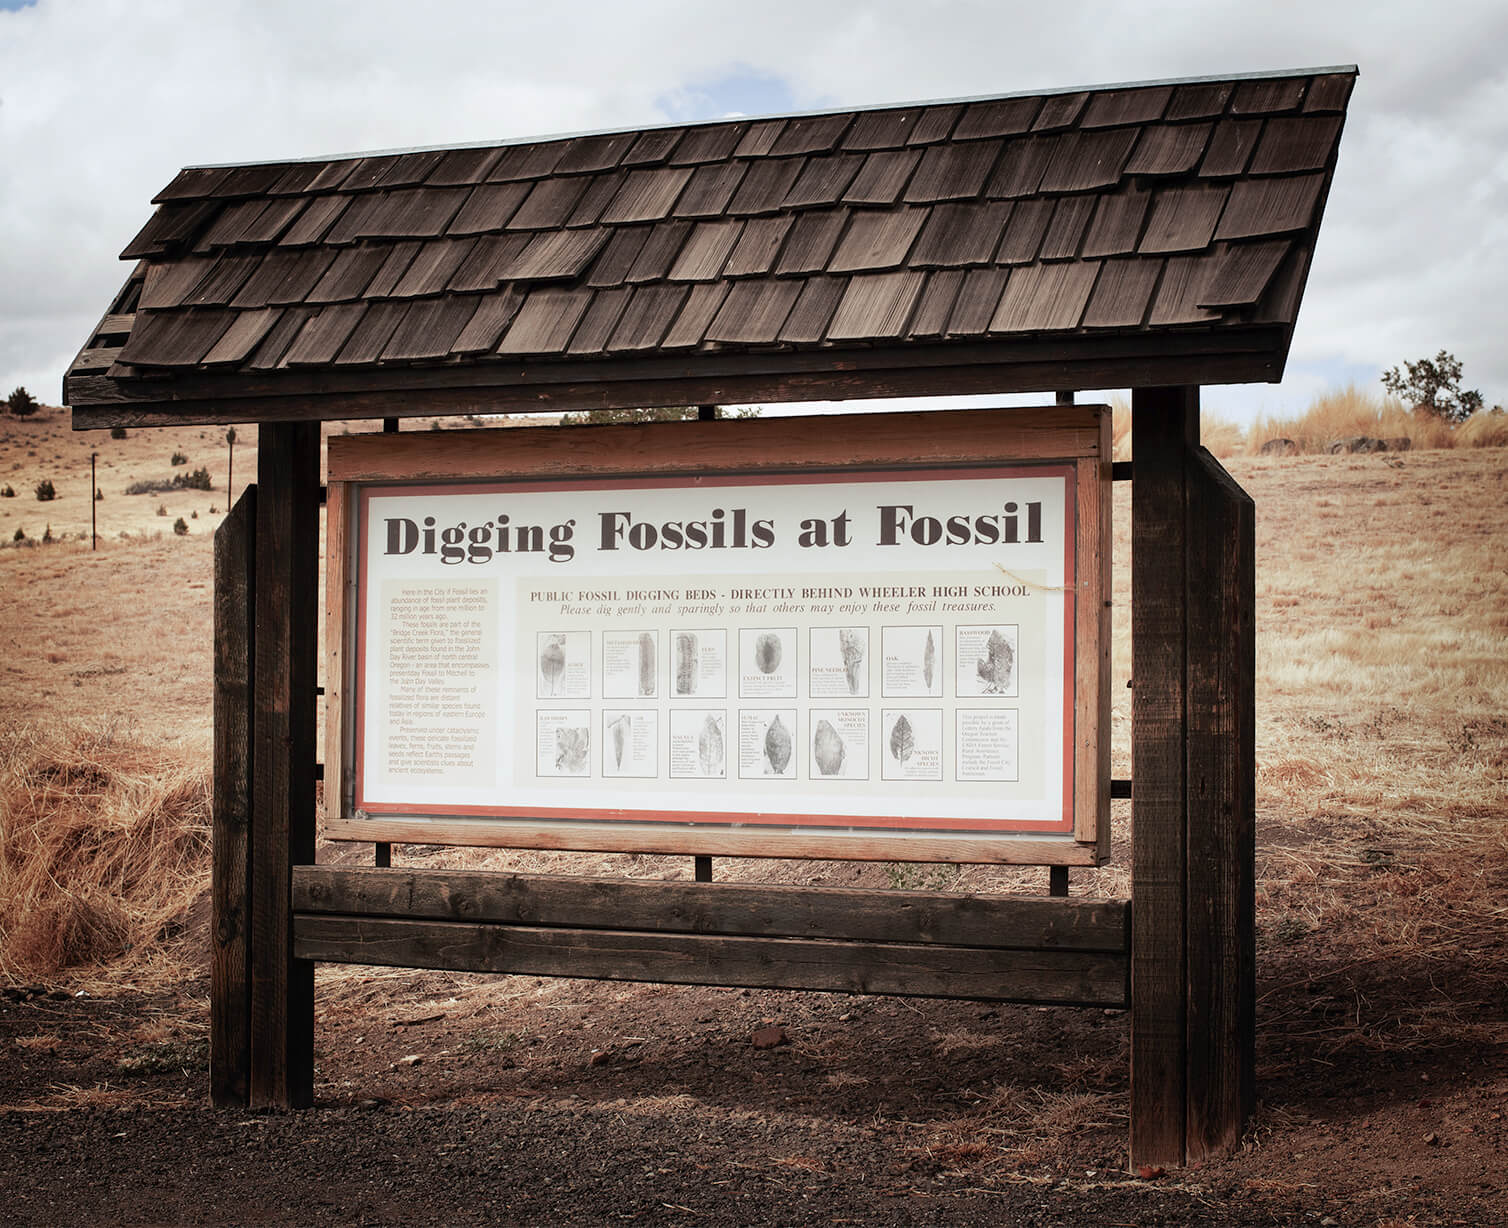 Sign about digging fossils at fossil